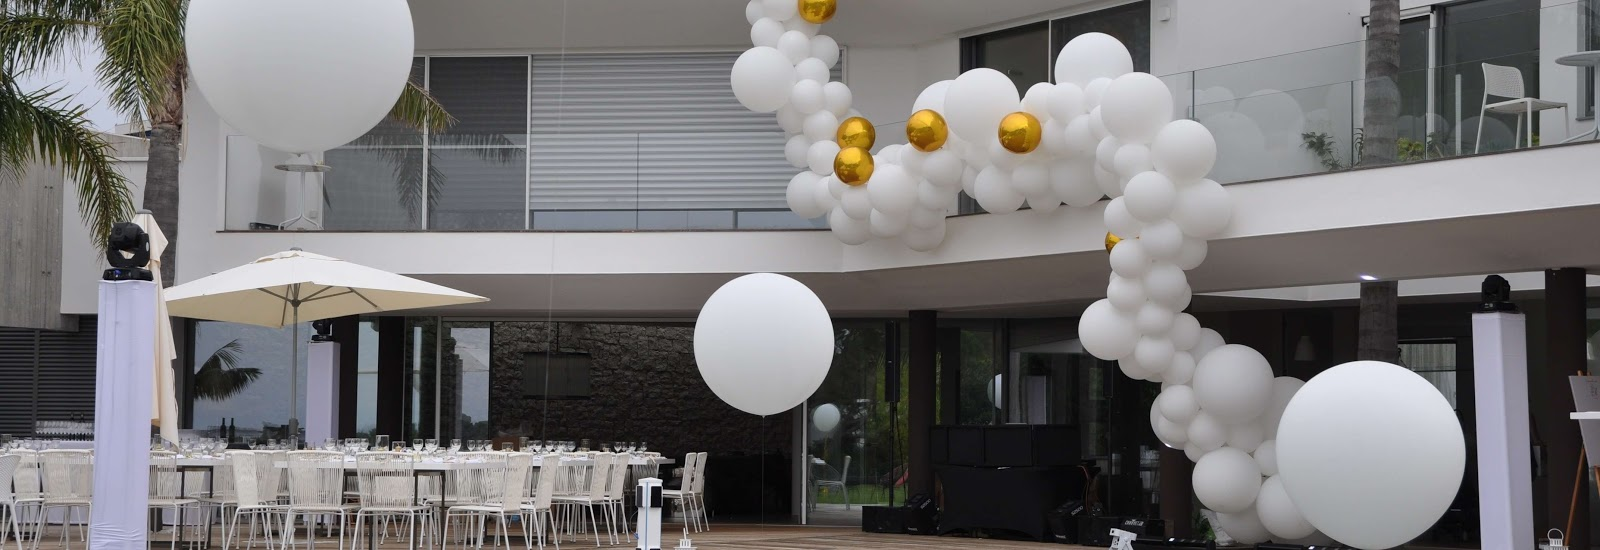 Balloon Party Shop Geneva Event Functions Balloon Artists